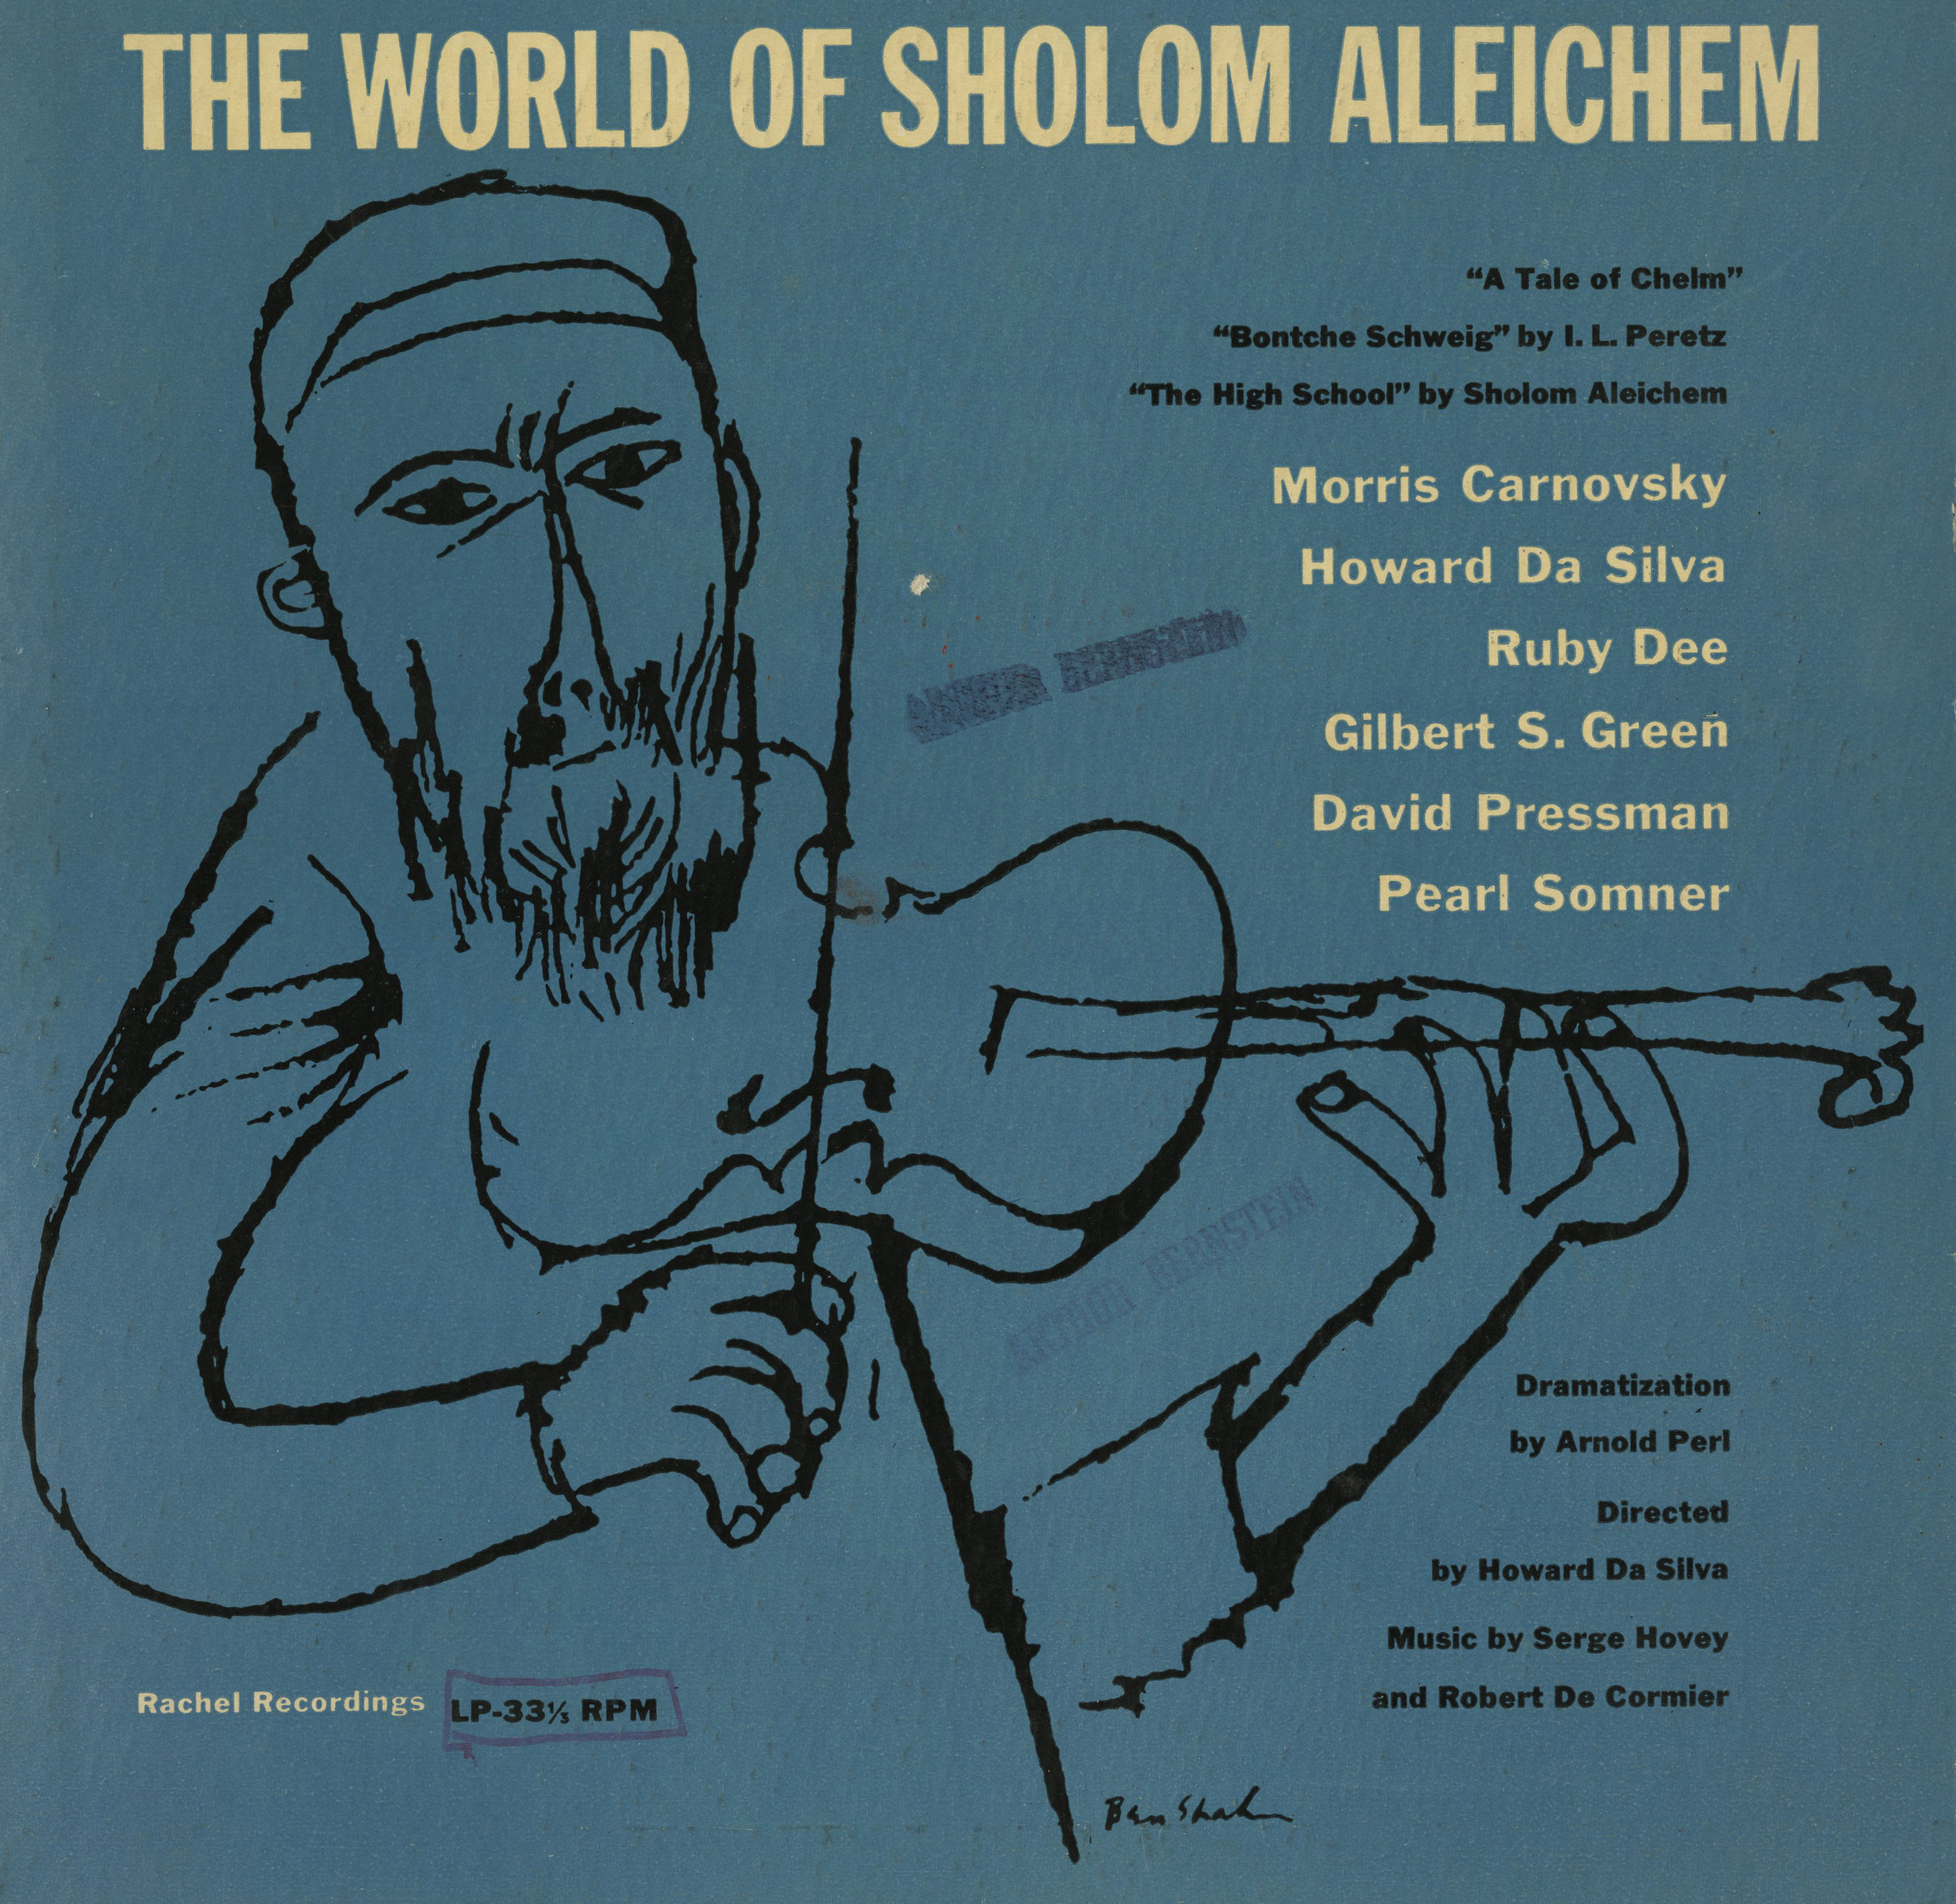 The World of Sholom Aleichem . 10-inch lp album cover, designer unknown, artwork by Ben Shahn. Rachel Recordings, New York, circa 1953. via  yivosounds.com